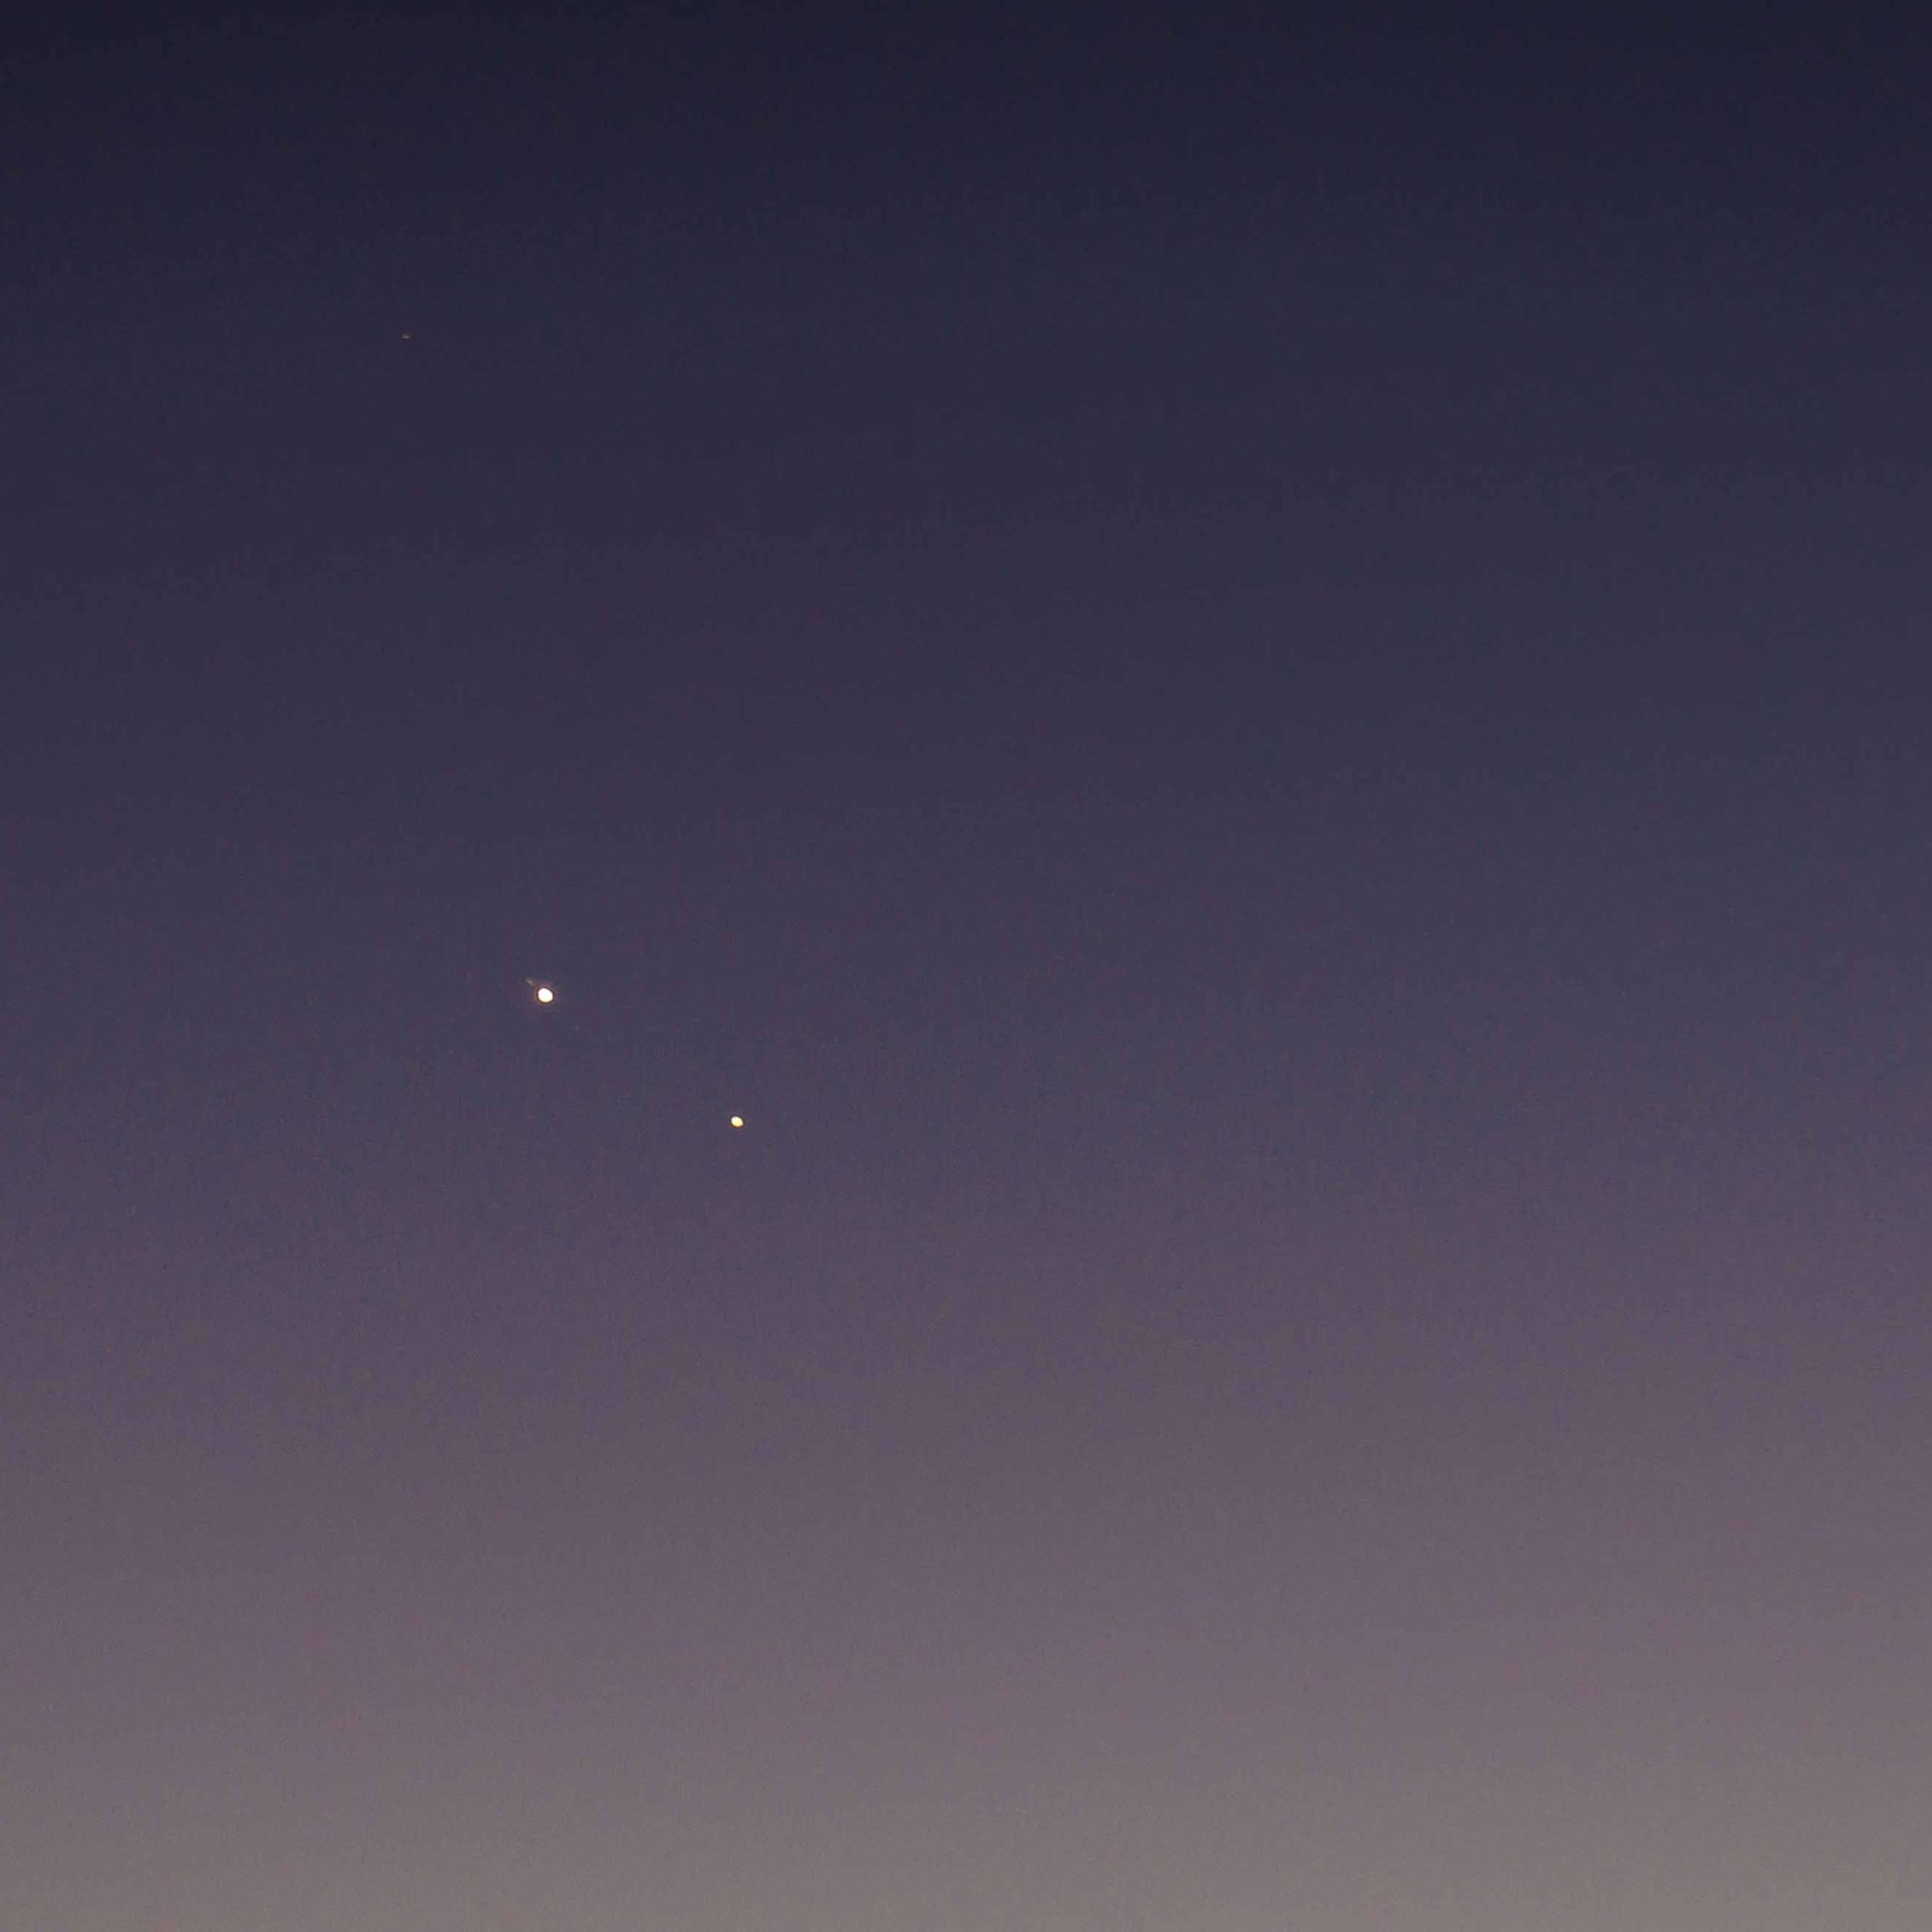 Jupiter and Saturn near Conjunction December 2020